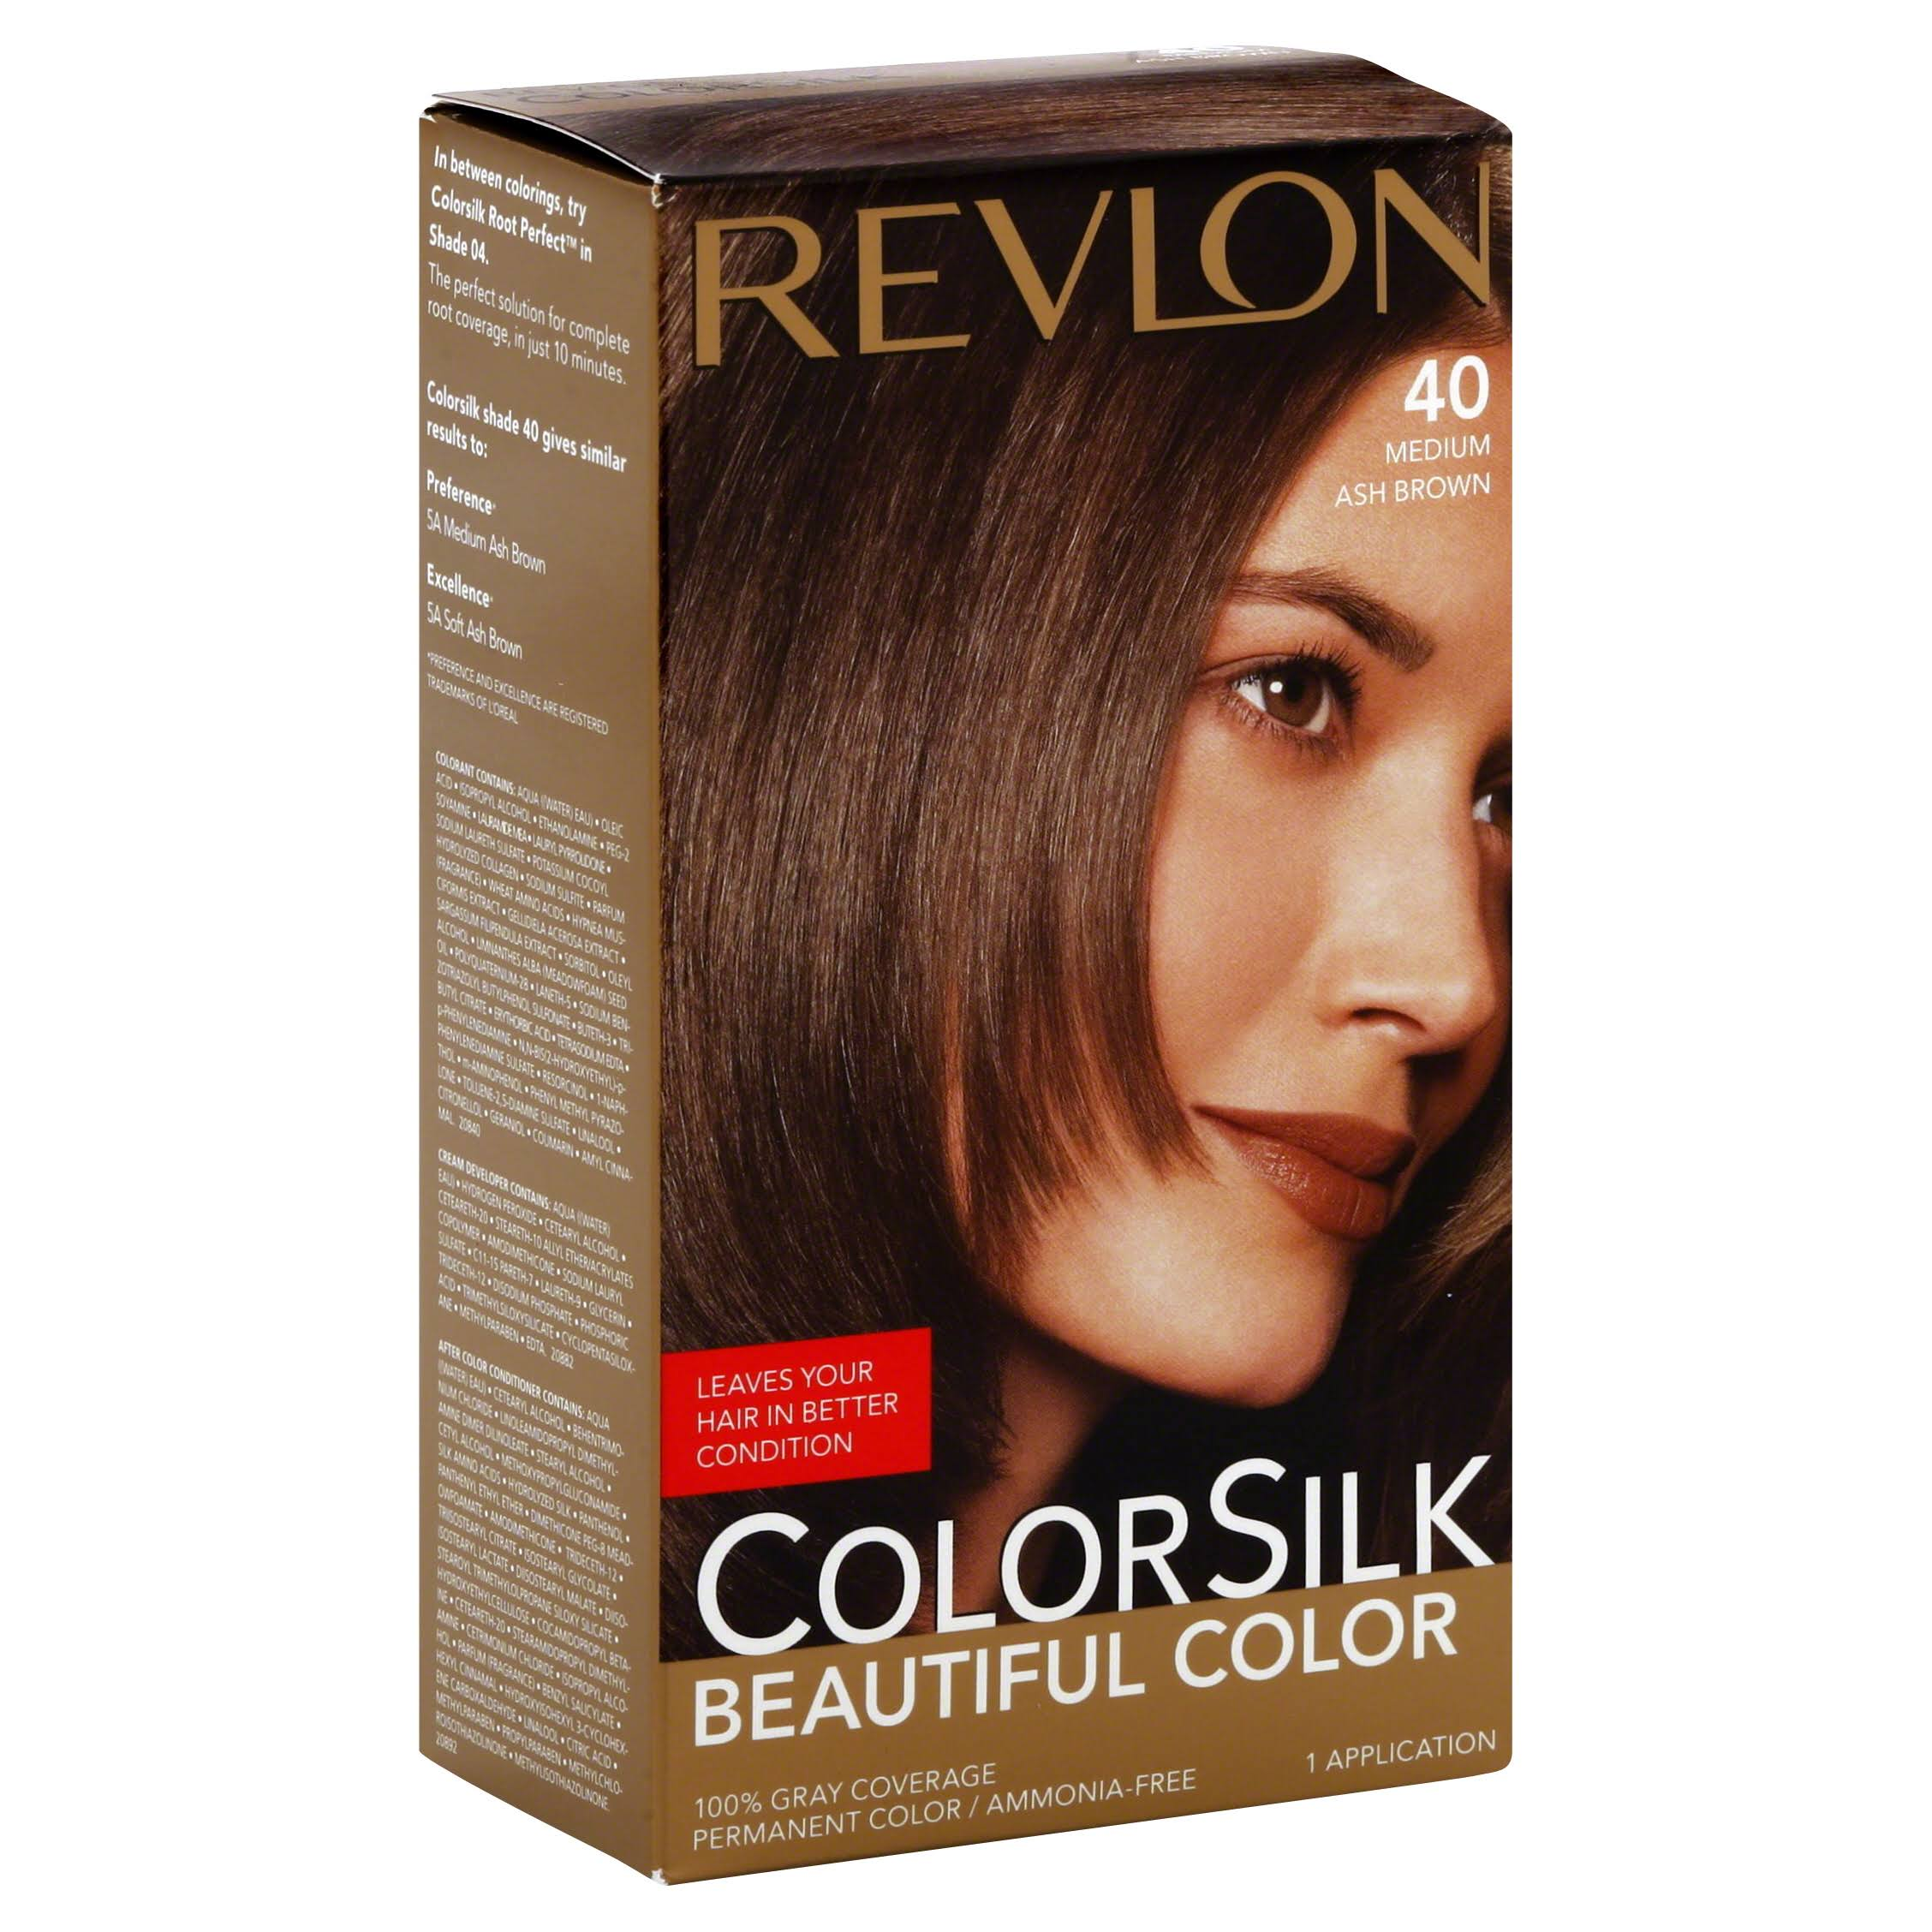 Revlon Colorsilk Hair Color - 40 Medium Ash Brown, 1 Applicaton